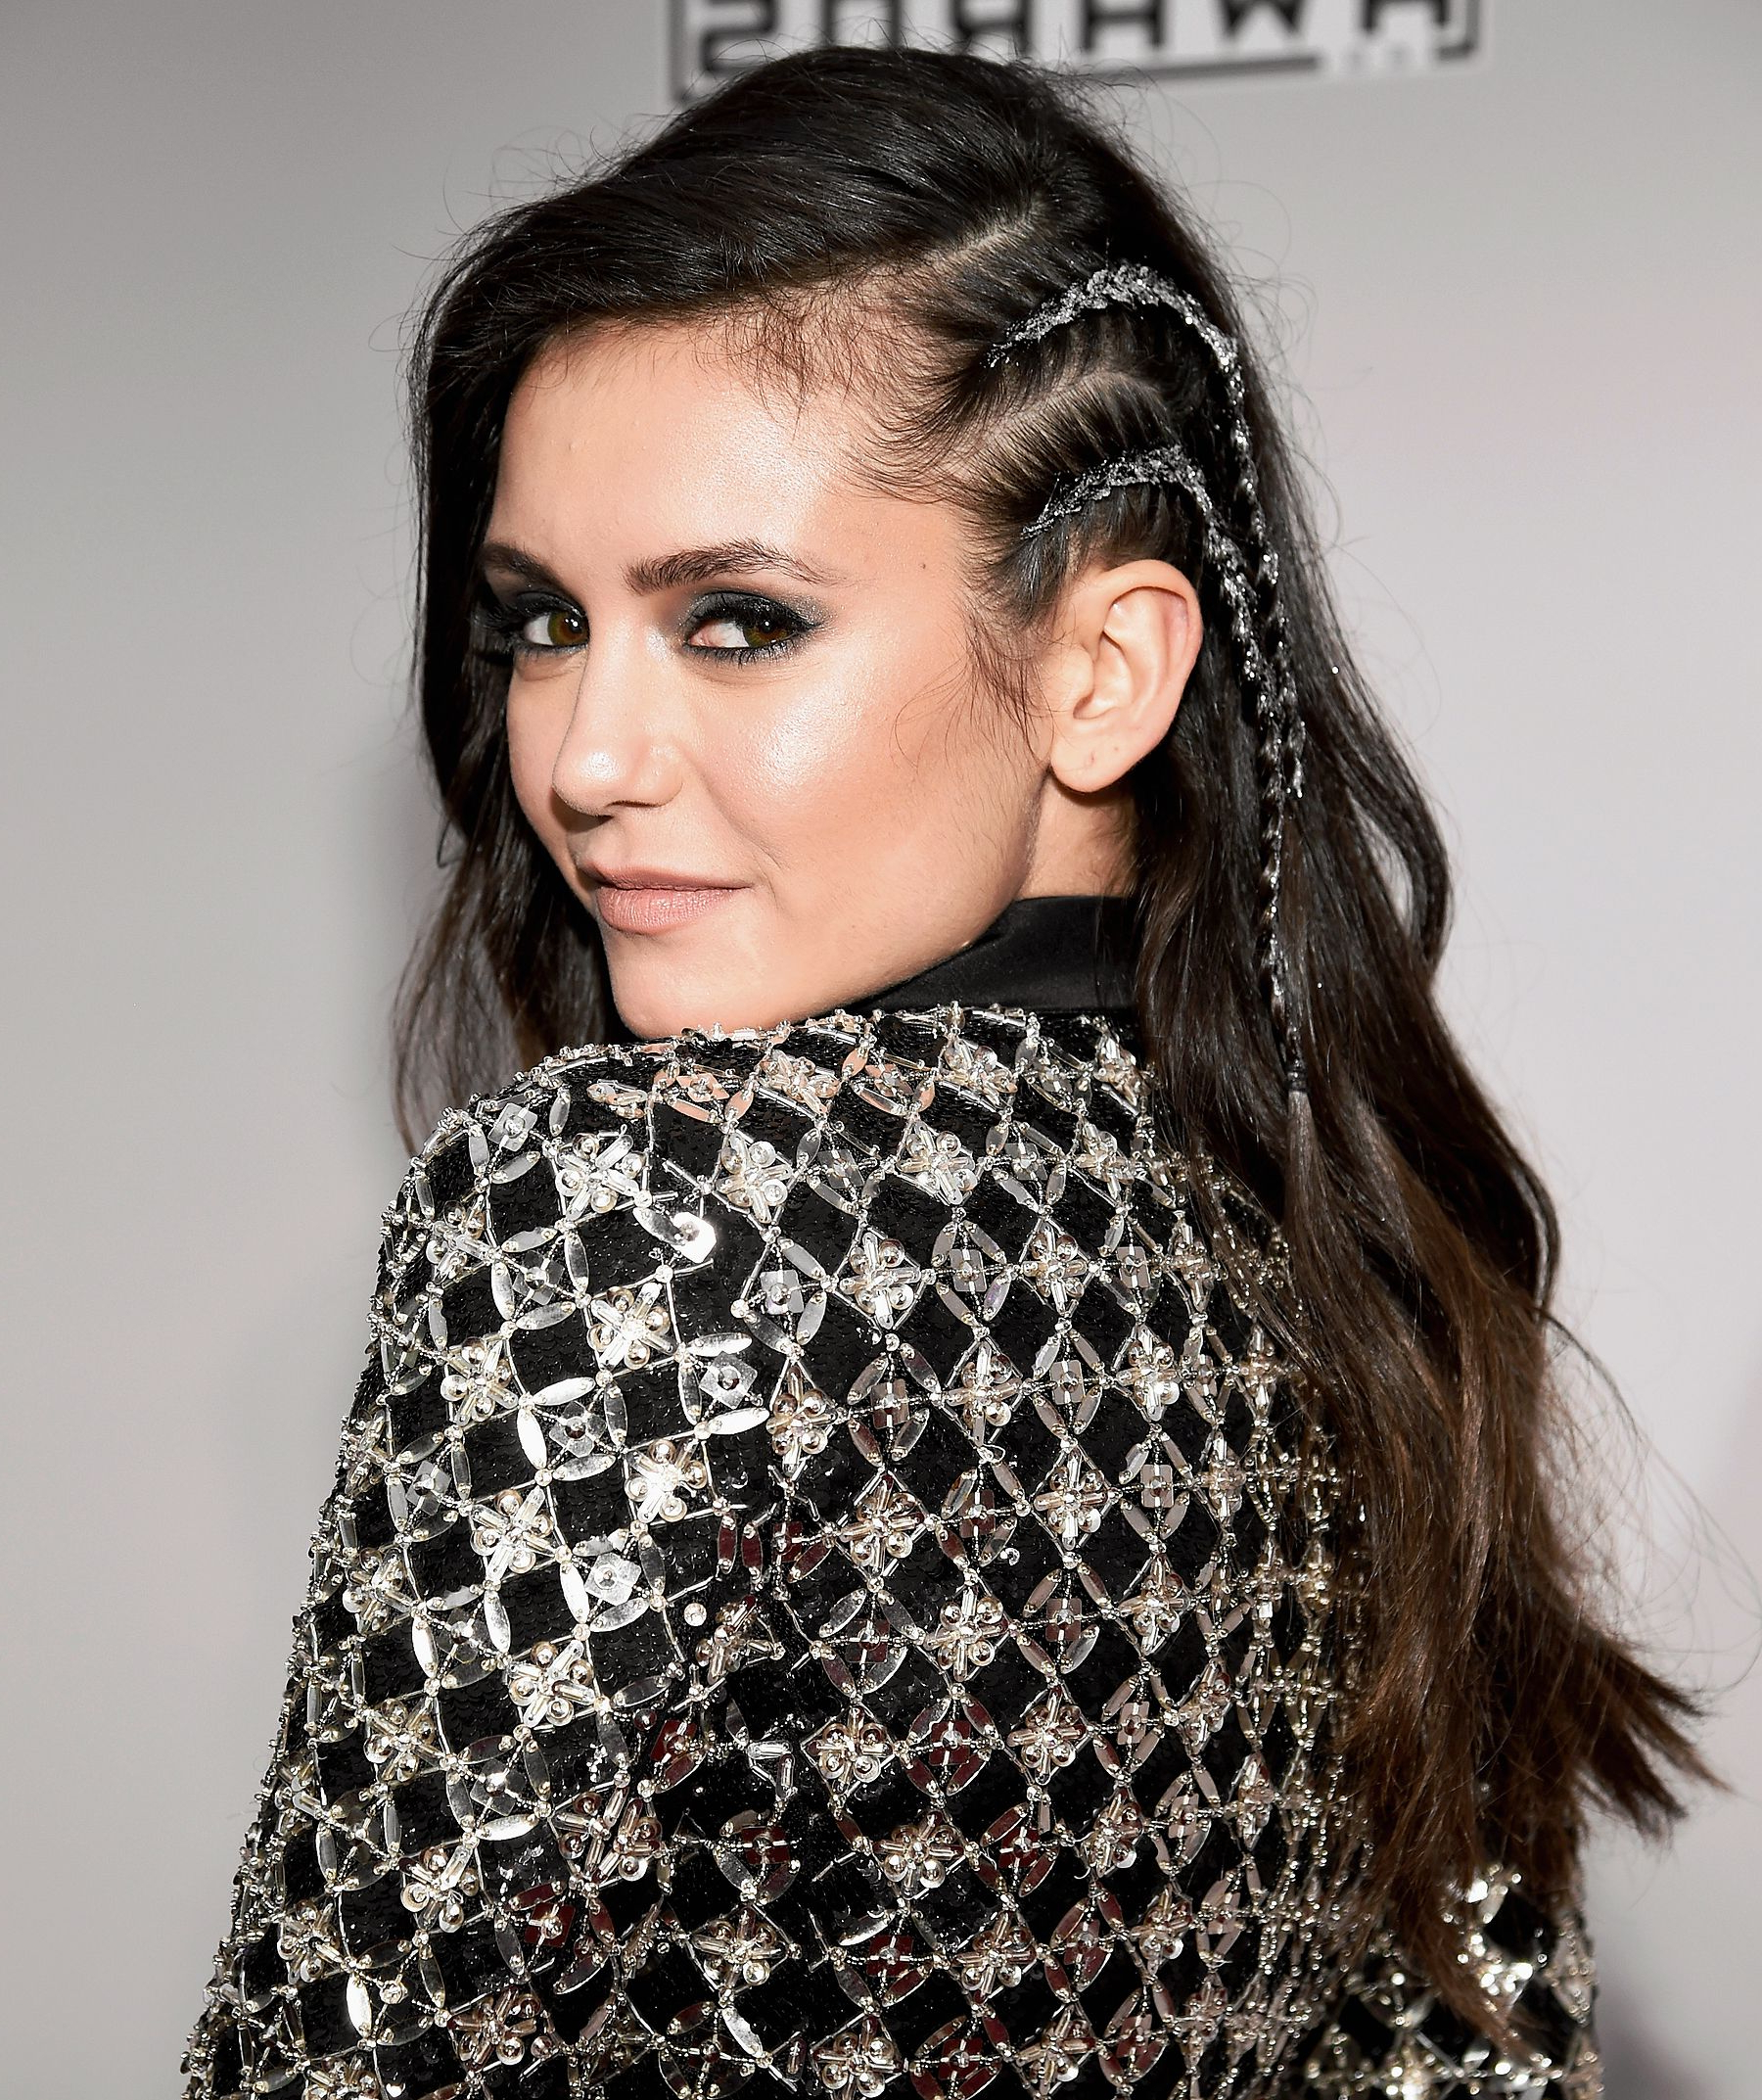 The Braid Brigade: Hollywood's Hottest Hairstyle In 2019 With Trendy Metallic Side Cornrows Braided Hairstyles (View 11 of 20)